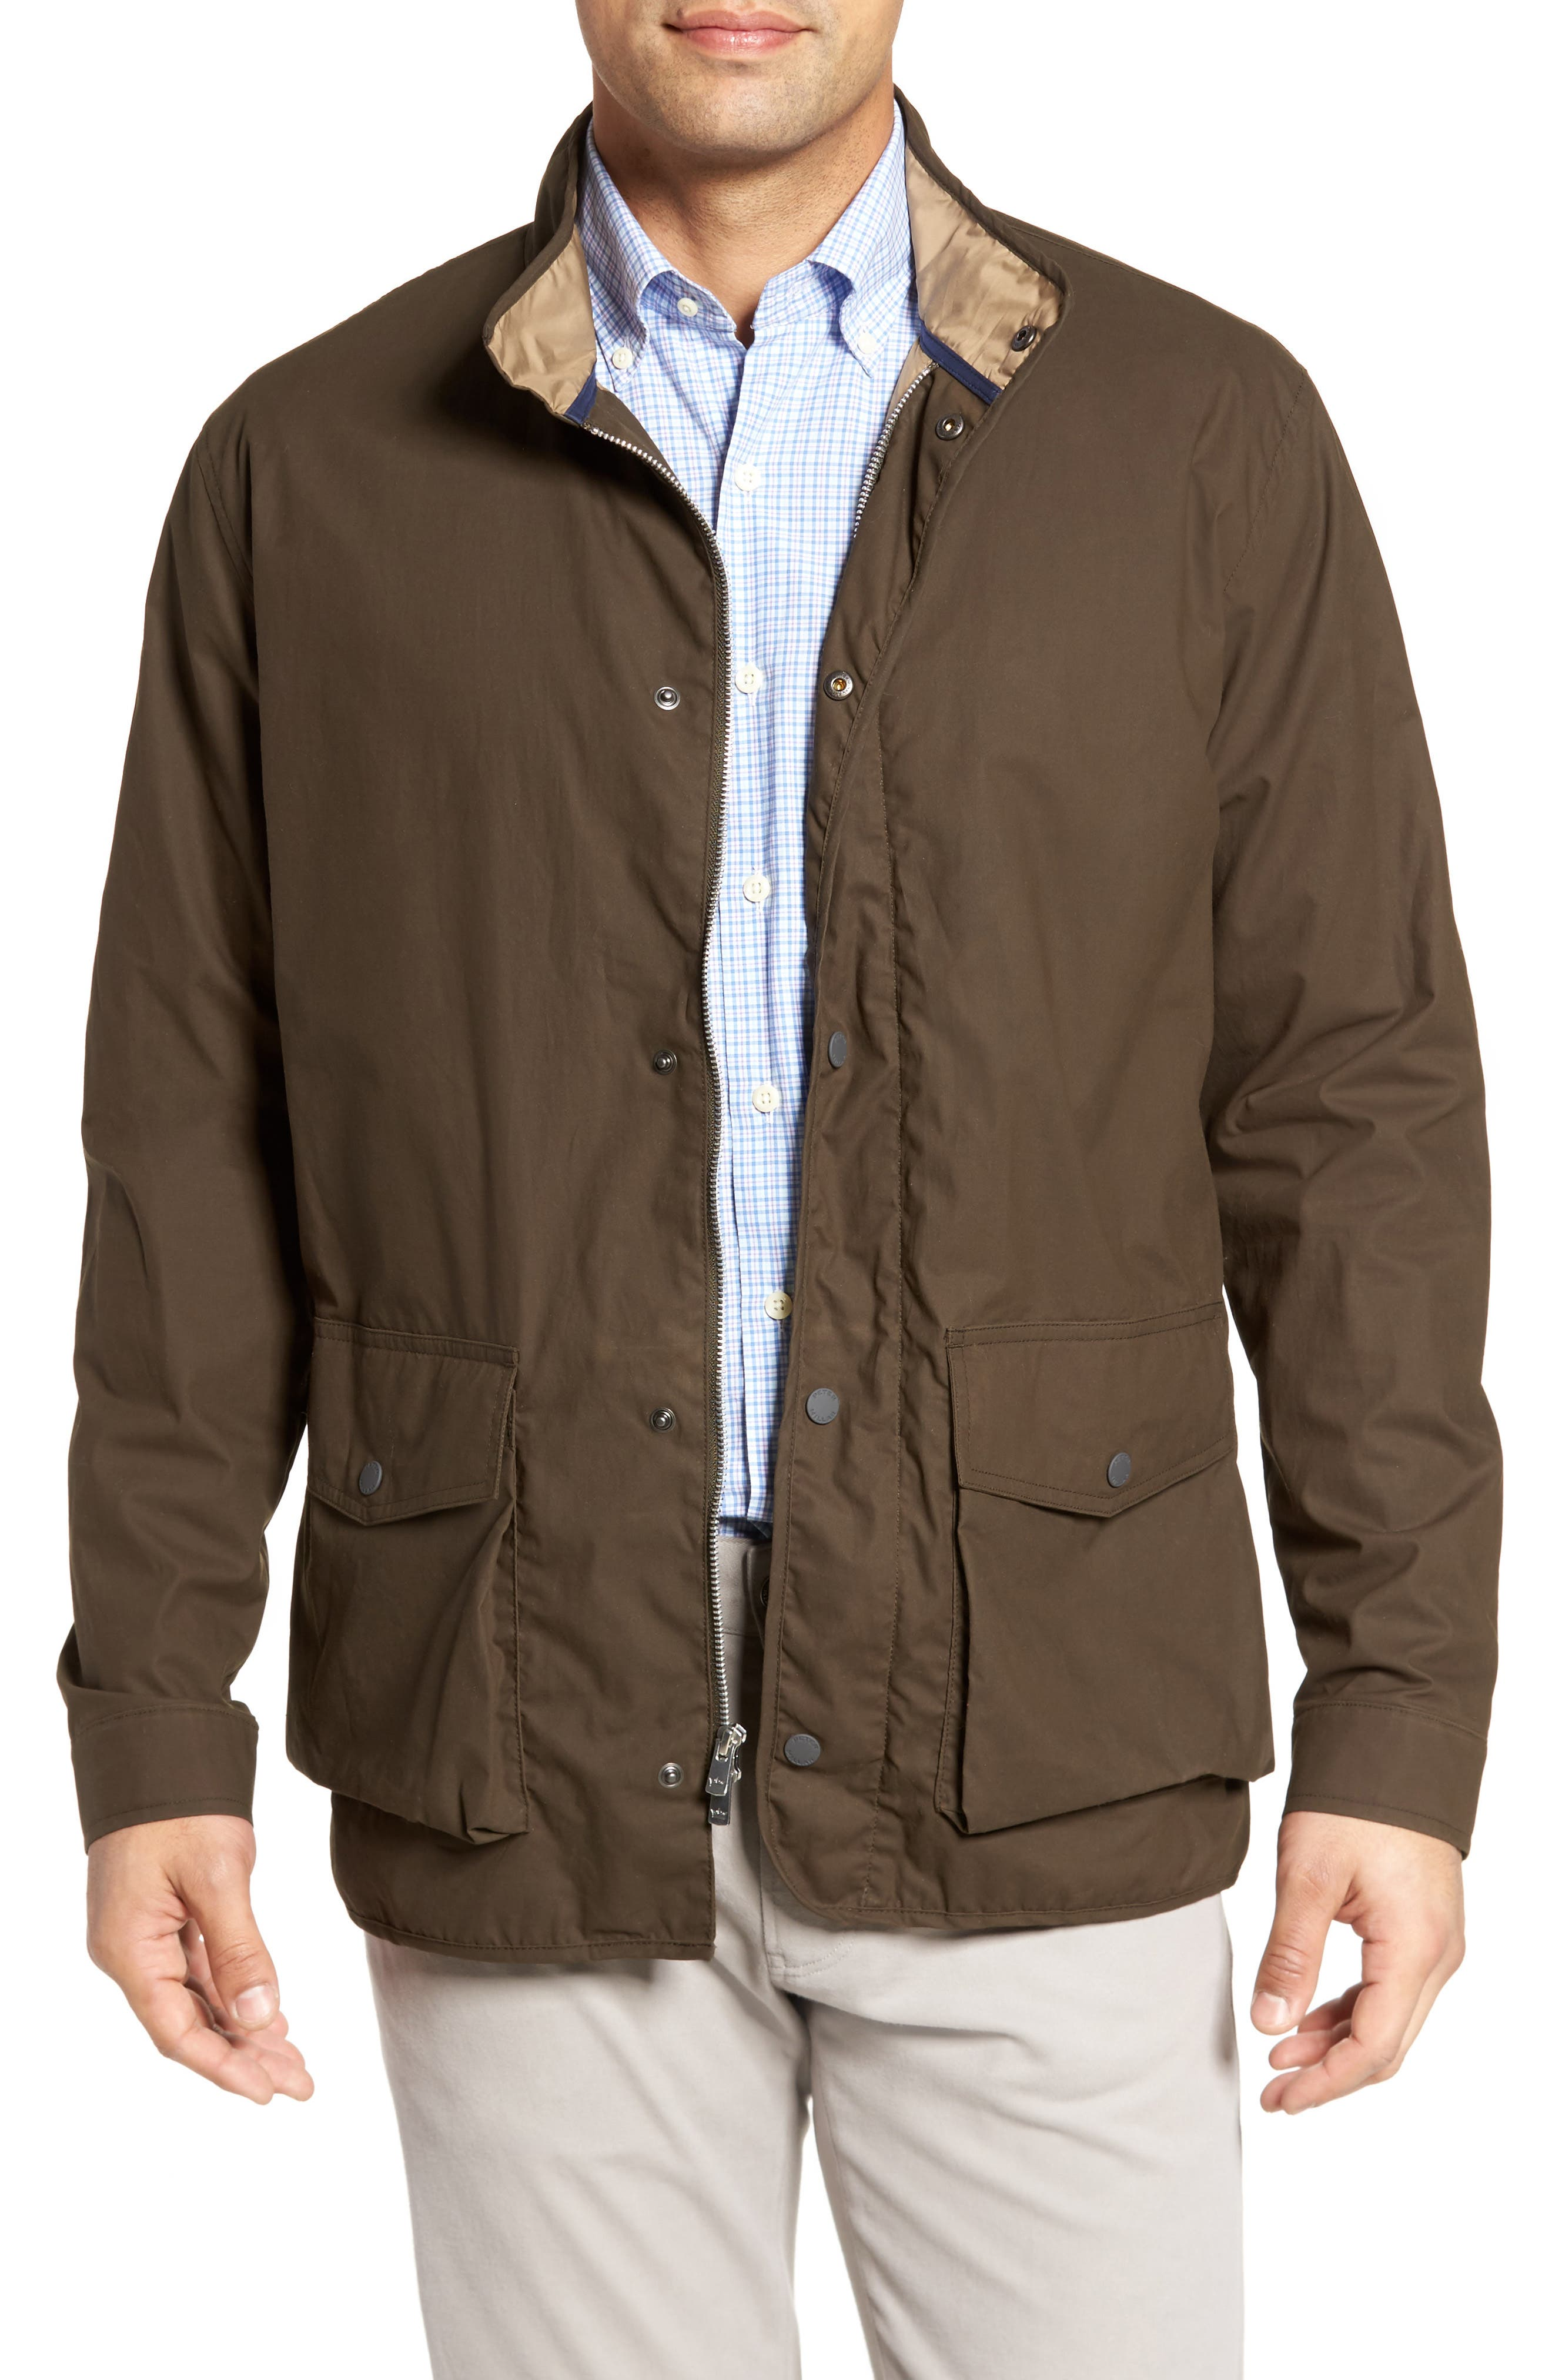 Harrison Wine Country Field Jacket,                             Main thumbnail 1, color,                             391